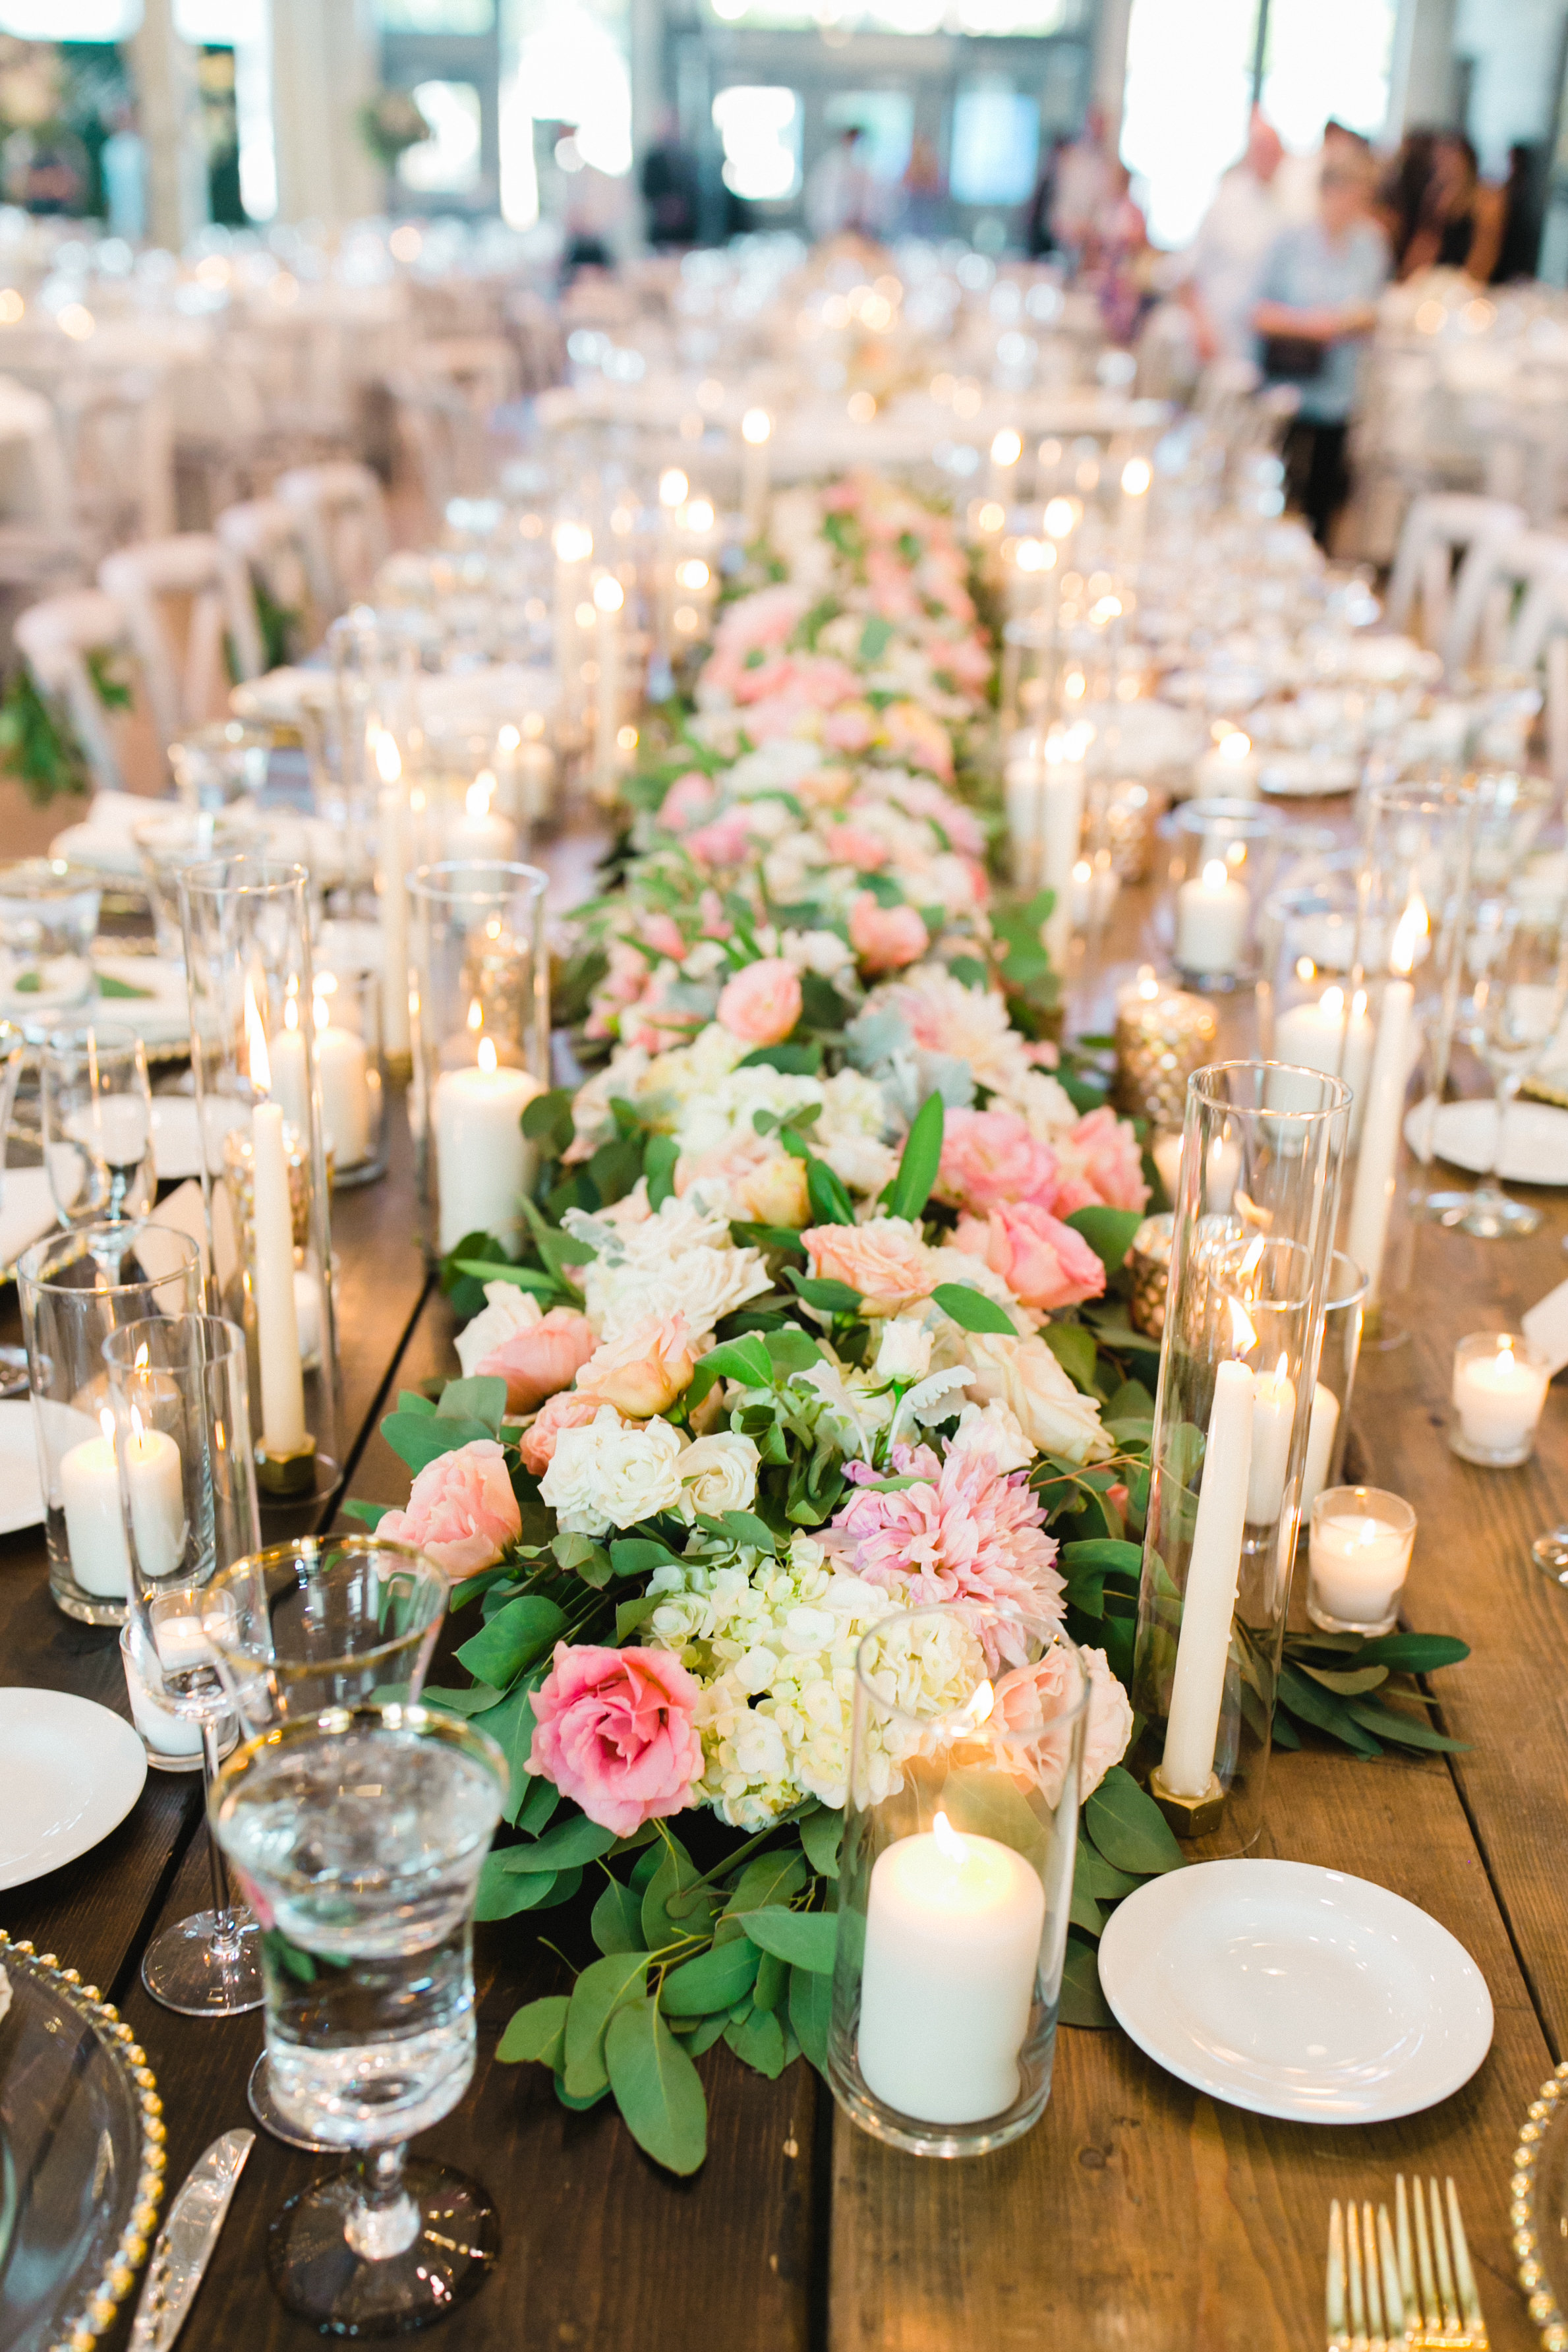 Kindred Blooms Machine Shop Wedding See Jane Plan Champagne Press Gina Zeidler Farina Baking Company